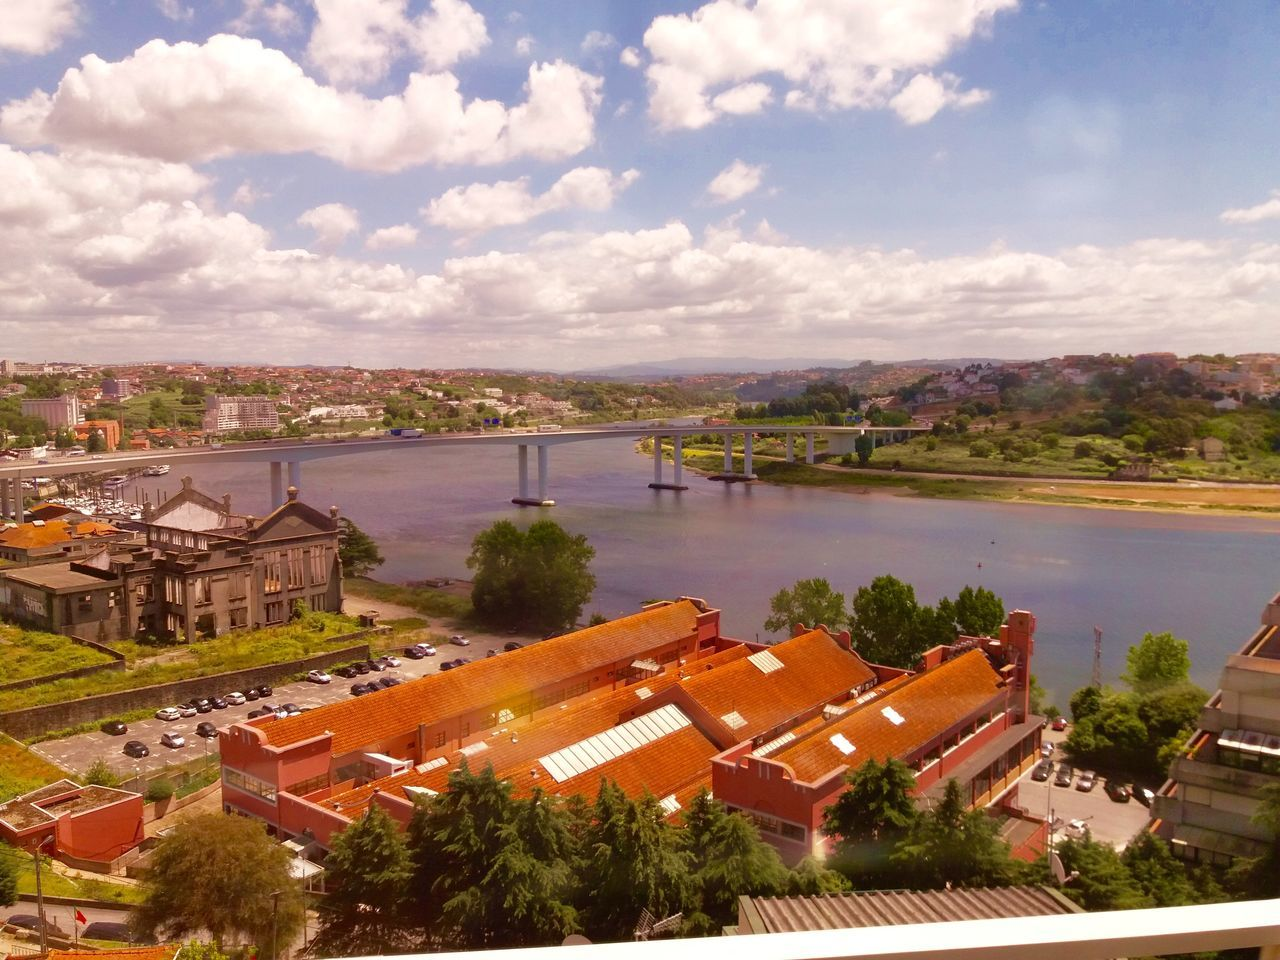 Architecture Cloud - Sky Douro  High Angle View Horyzont Landscape Nature No People Porto River Roof Sky Train Station Tranquility Travel Destinations Water